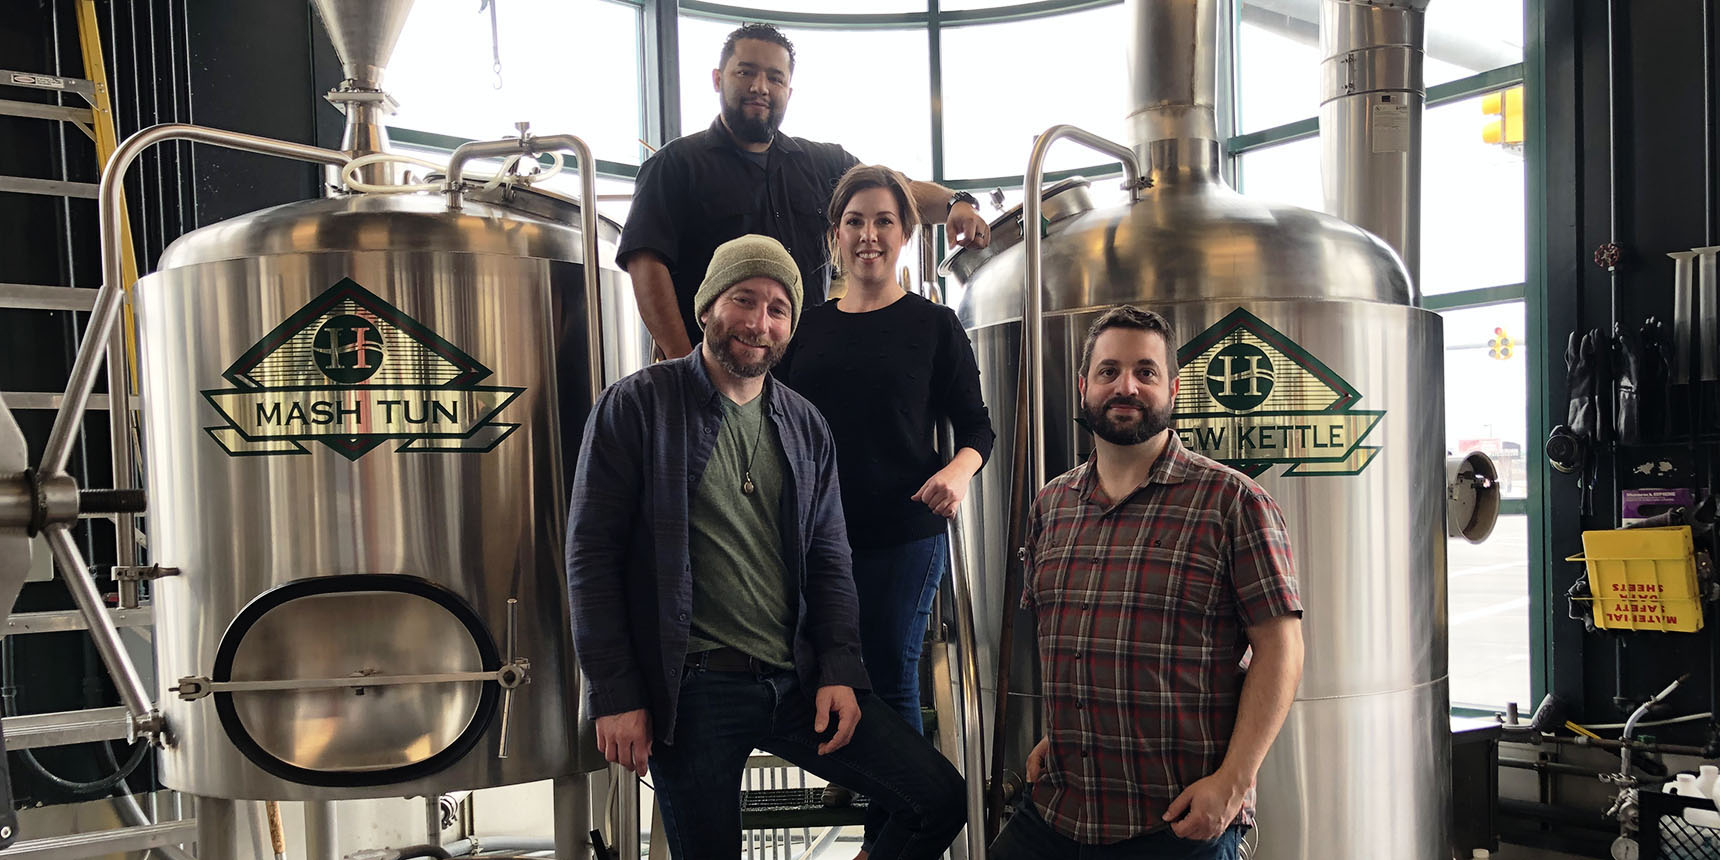 From left, Brock Blonquist, general manager; Richard Rodriguez, brewer; Natalie Rogers, marketing director; and Donovan Steele, head brewer.